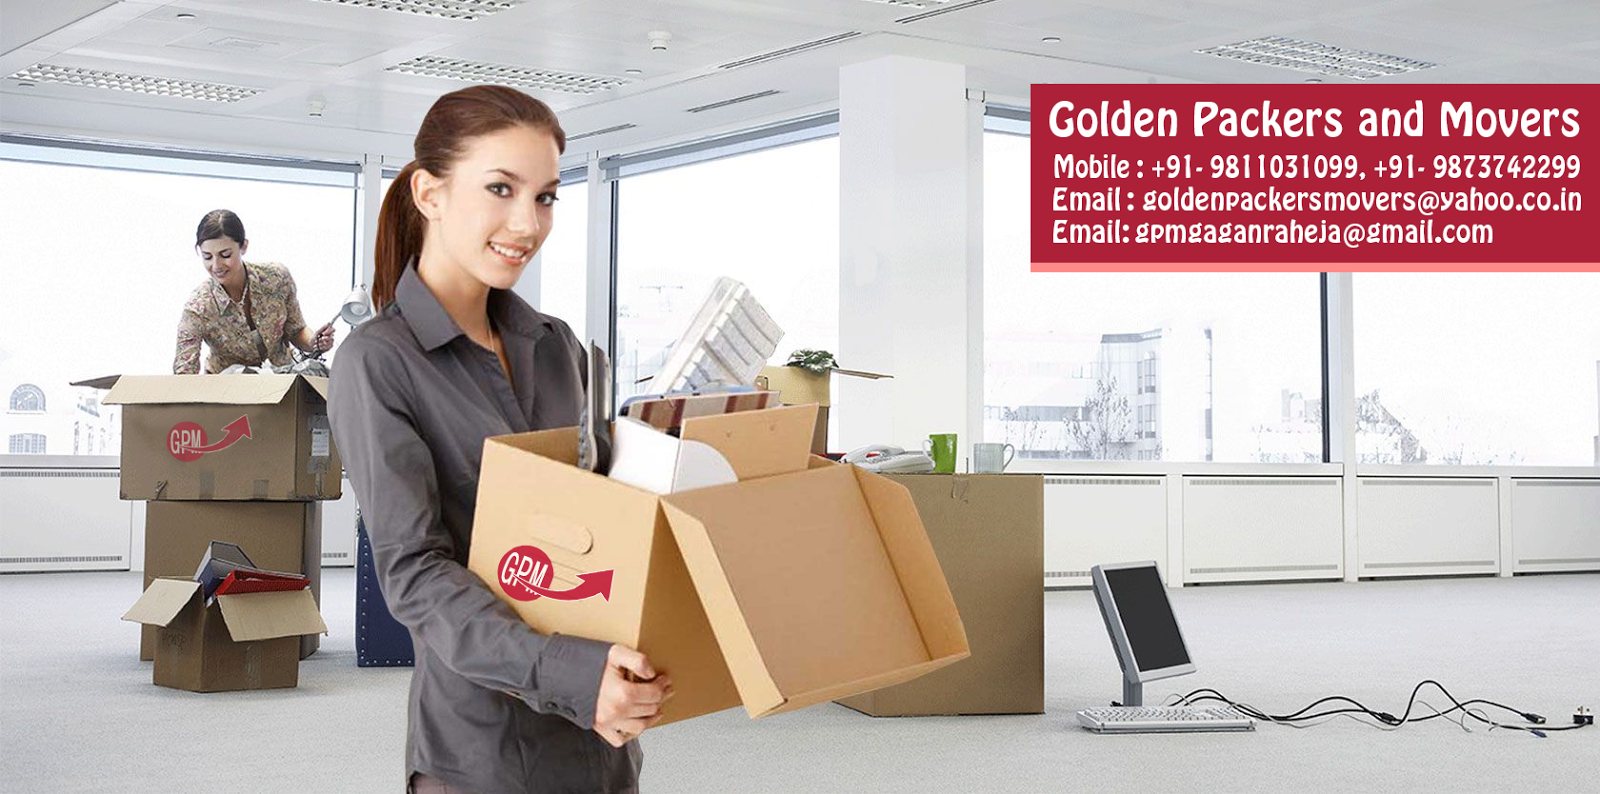 Golden Packers And Movers